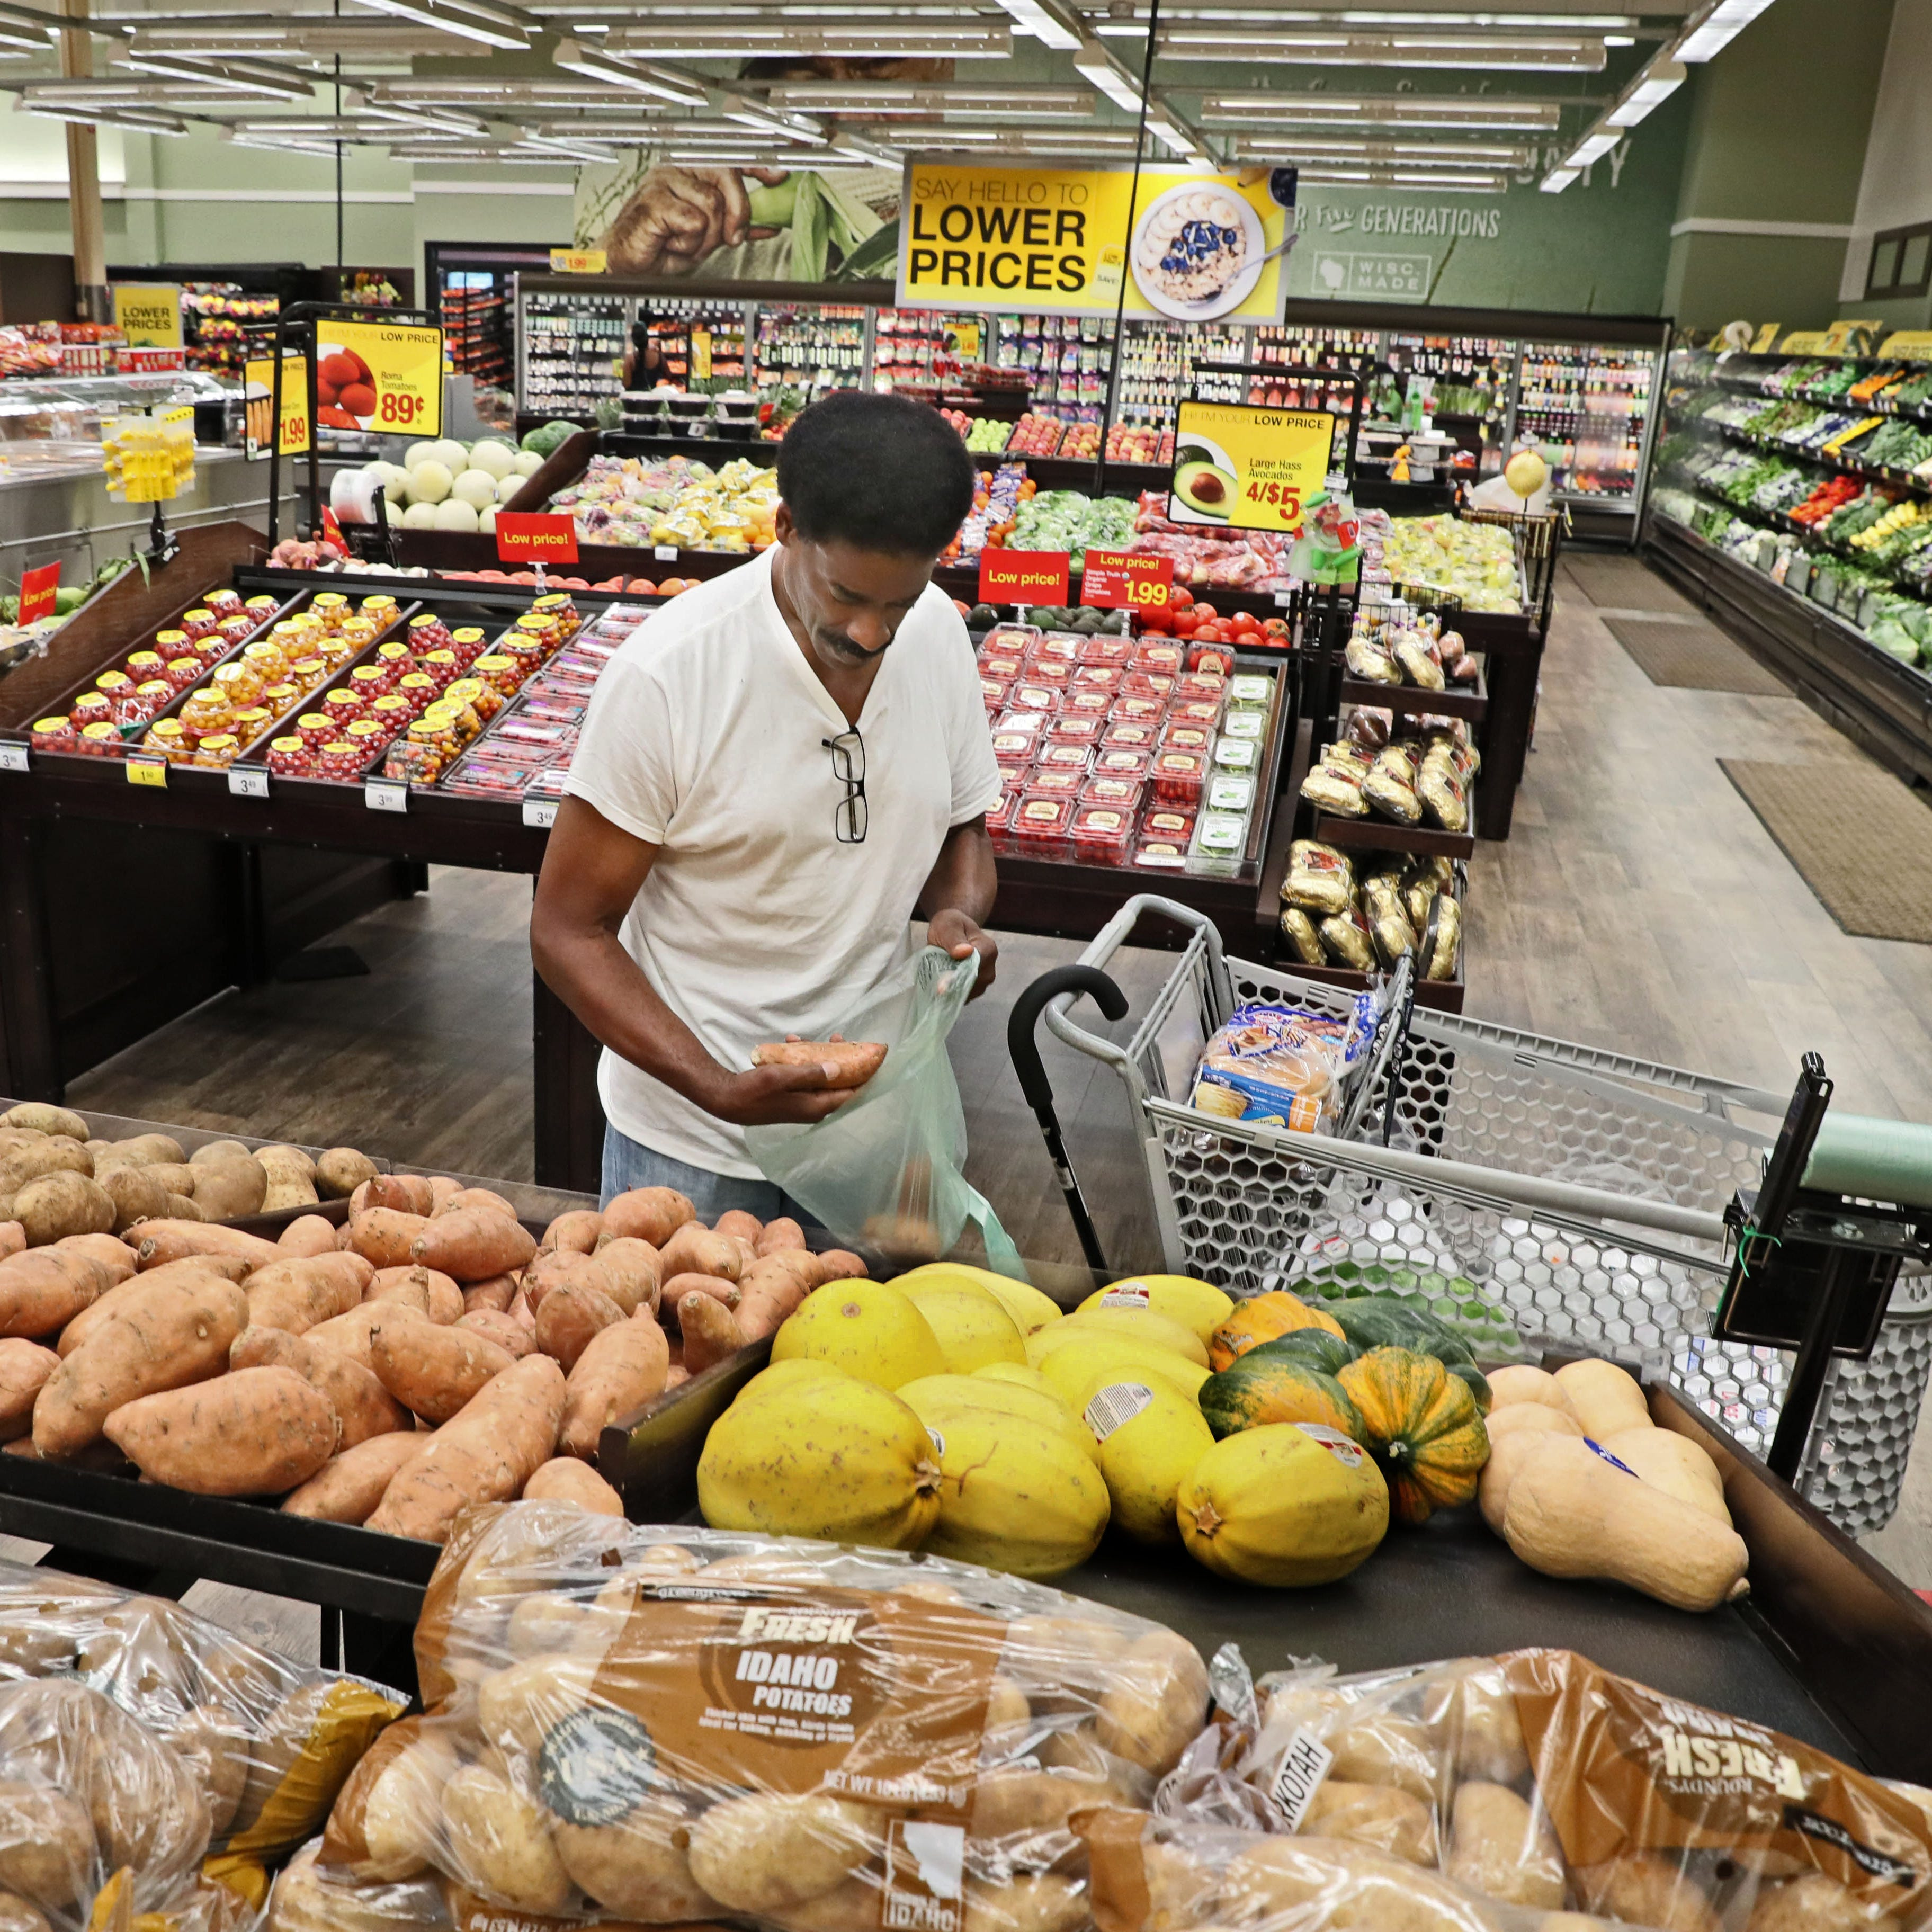 Pick 'n Save invests $2 million in store in Milwaukee neighborhood other retailers abandoned